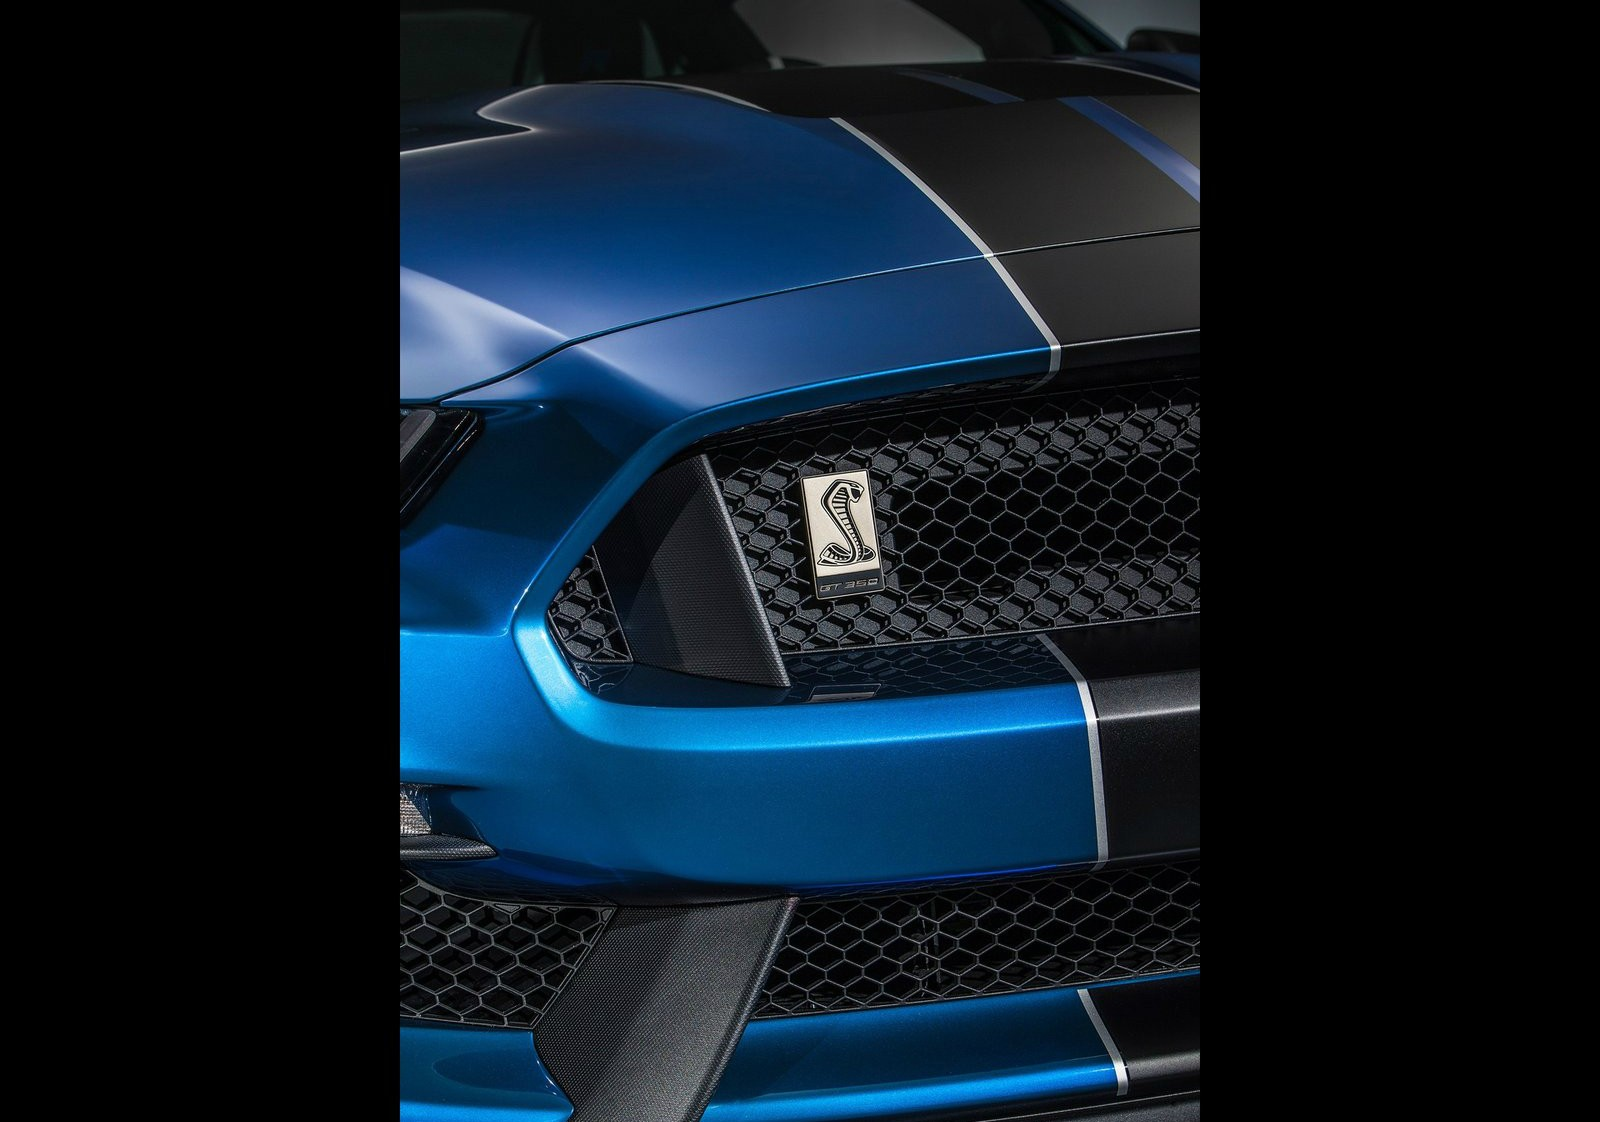 2021 ford mustang lineup leaked the shelby gt350 is out